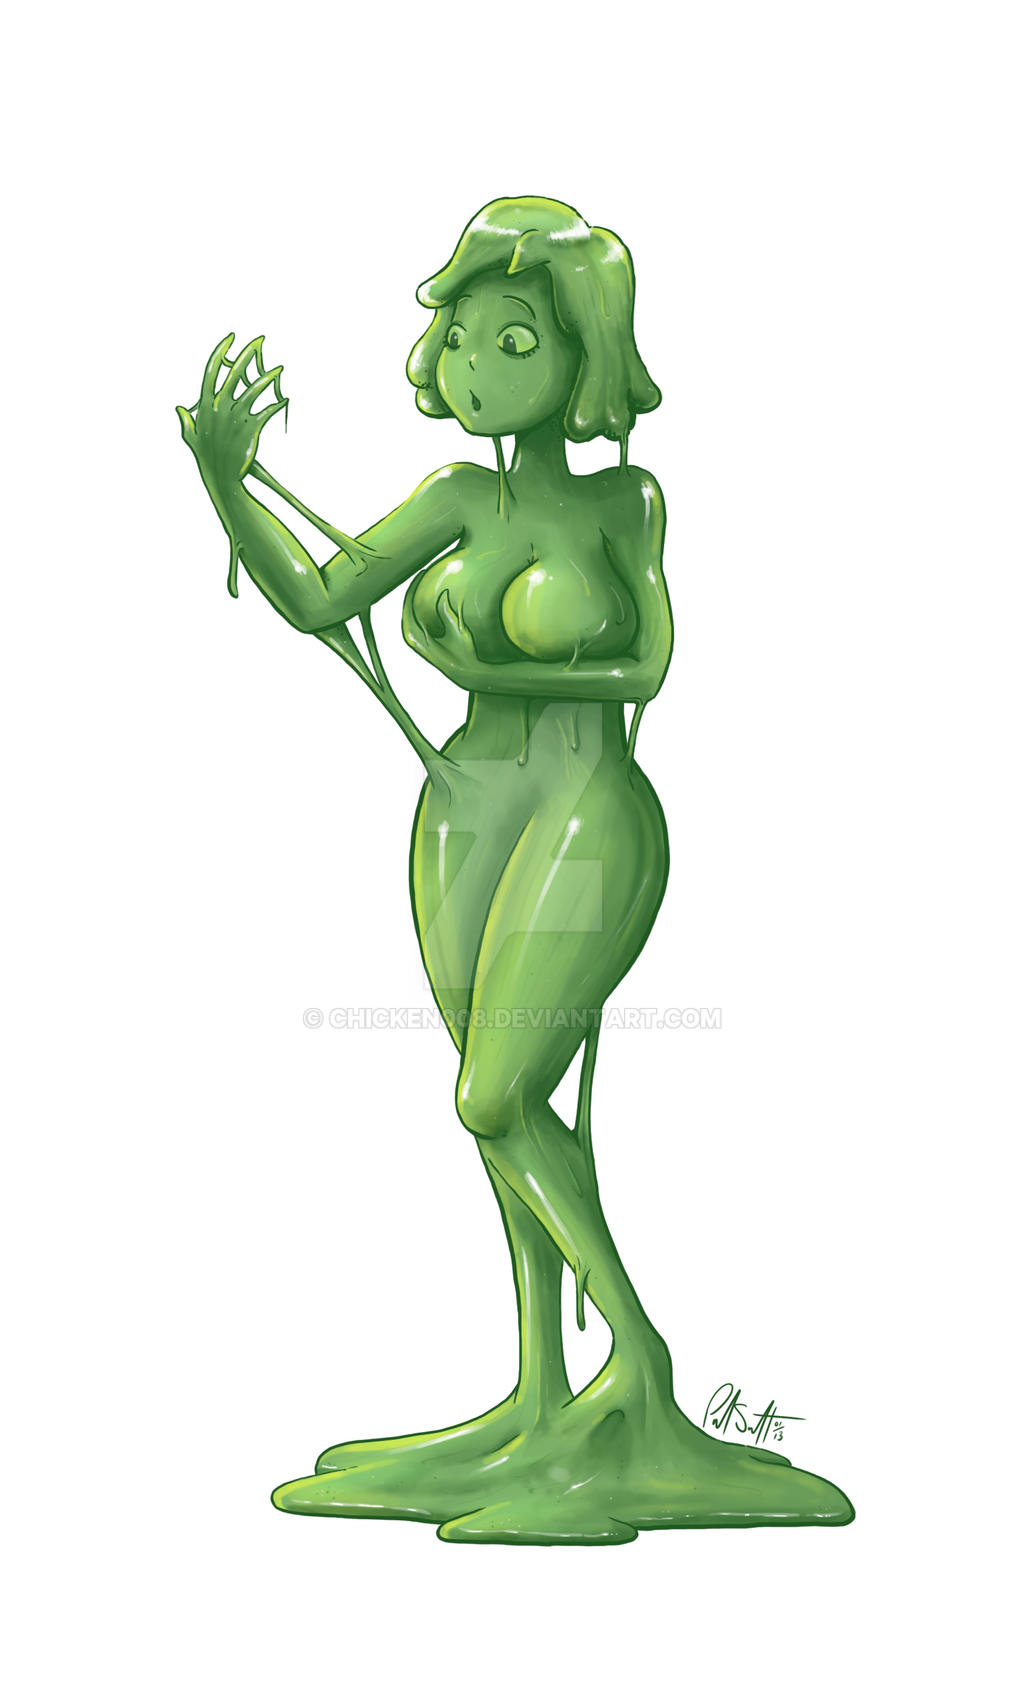 Slime porns images sexy streaming